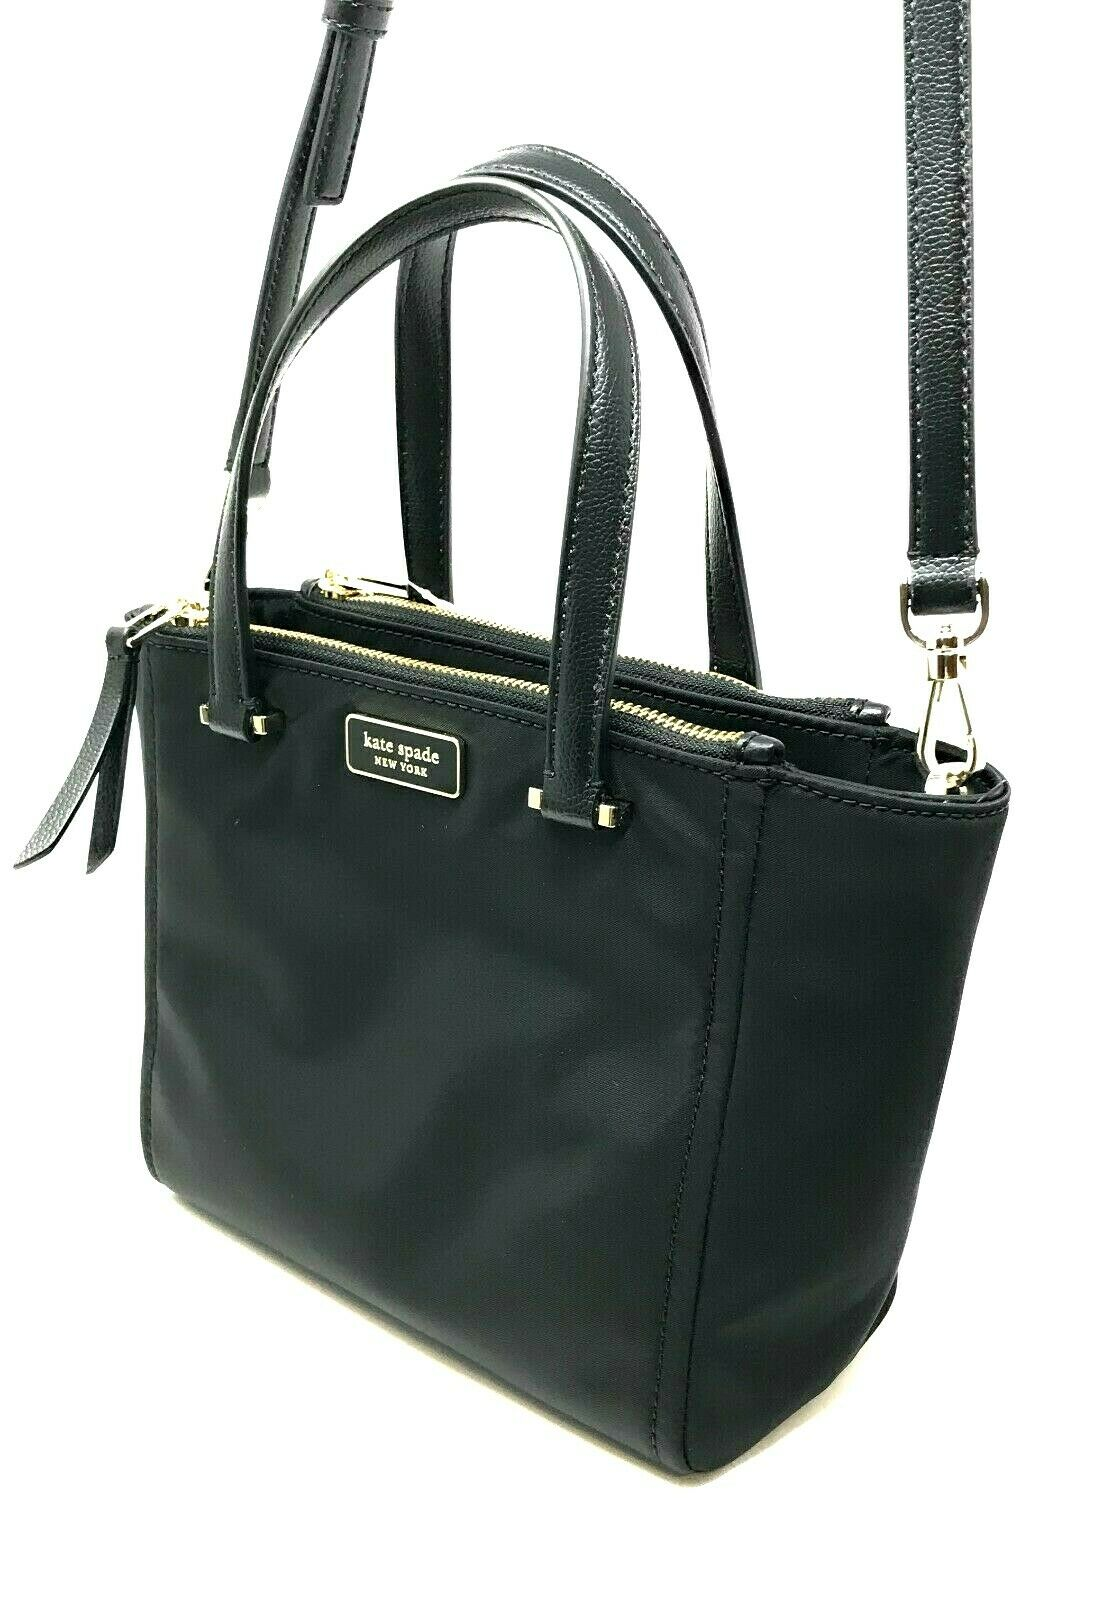 Kate Spade Dawn Small Satchel Nylon Crossbody Bag Black WKRU5917 $199